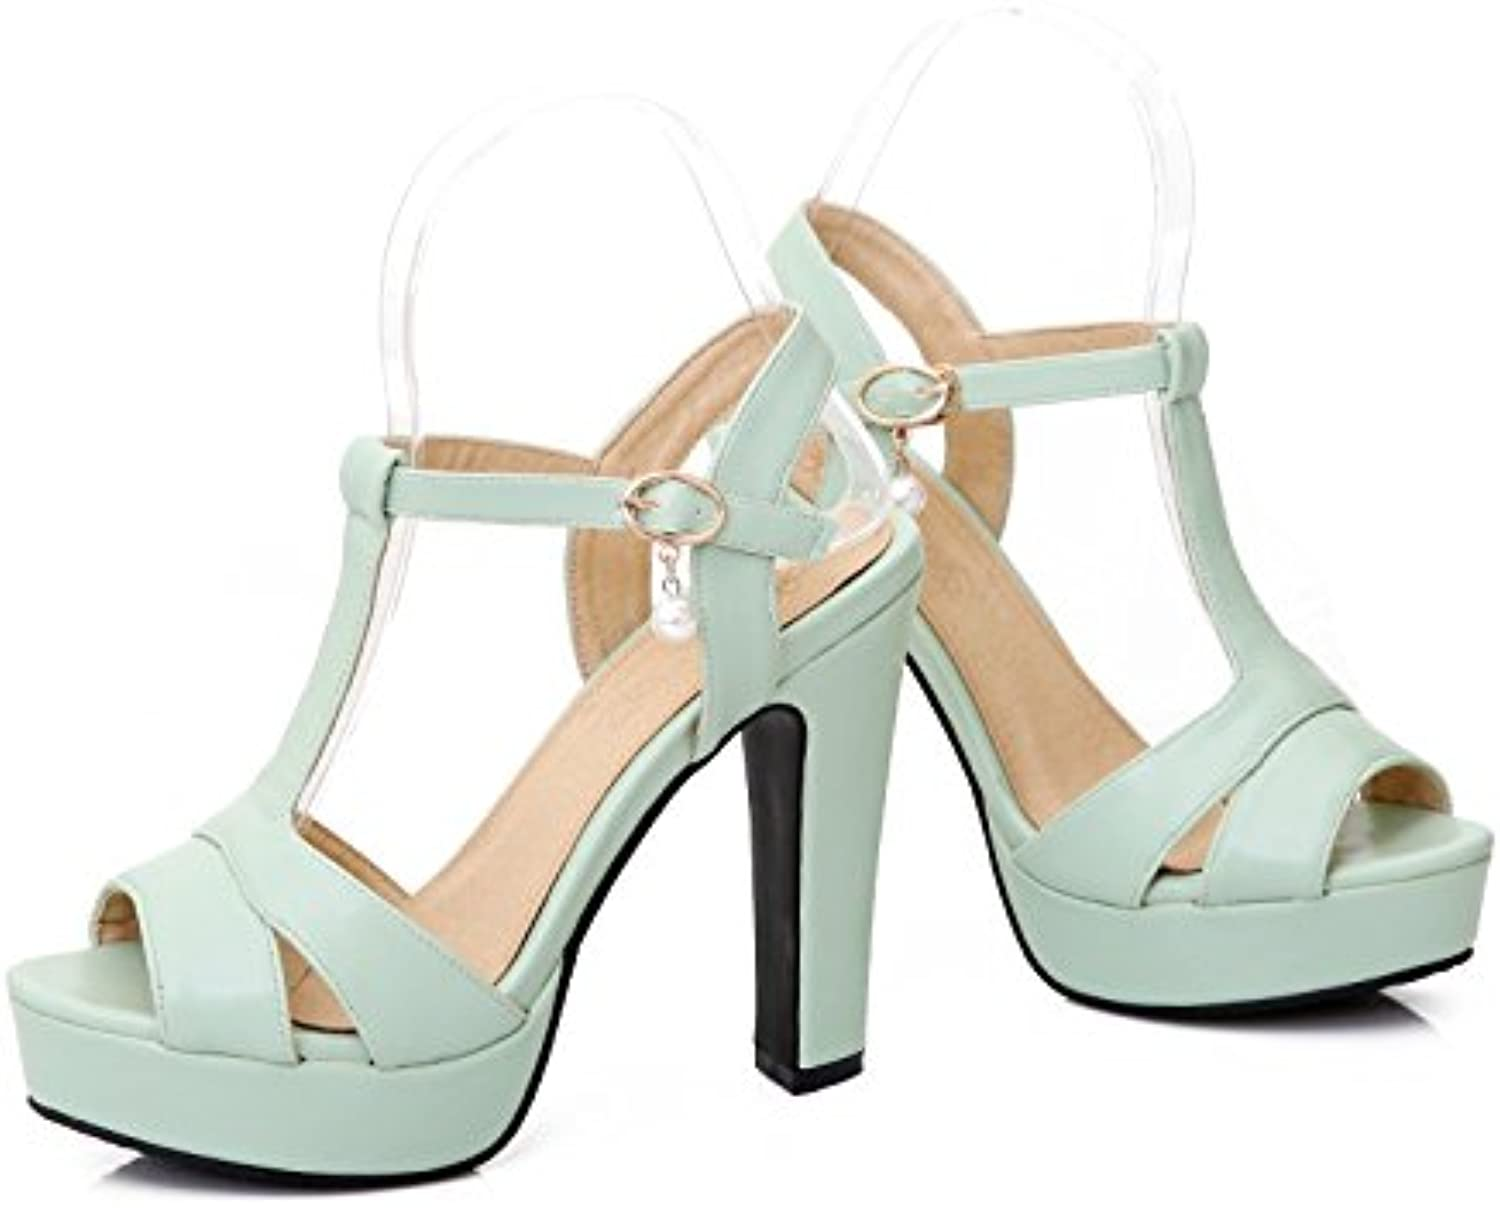 WHW Women's Hole shoes Leatherette Summer Outdoor Dress Casual Walking Imitation Pearl Platform Sandals,Green,40